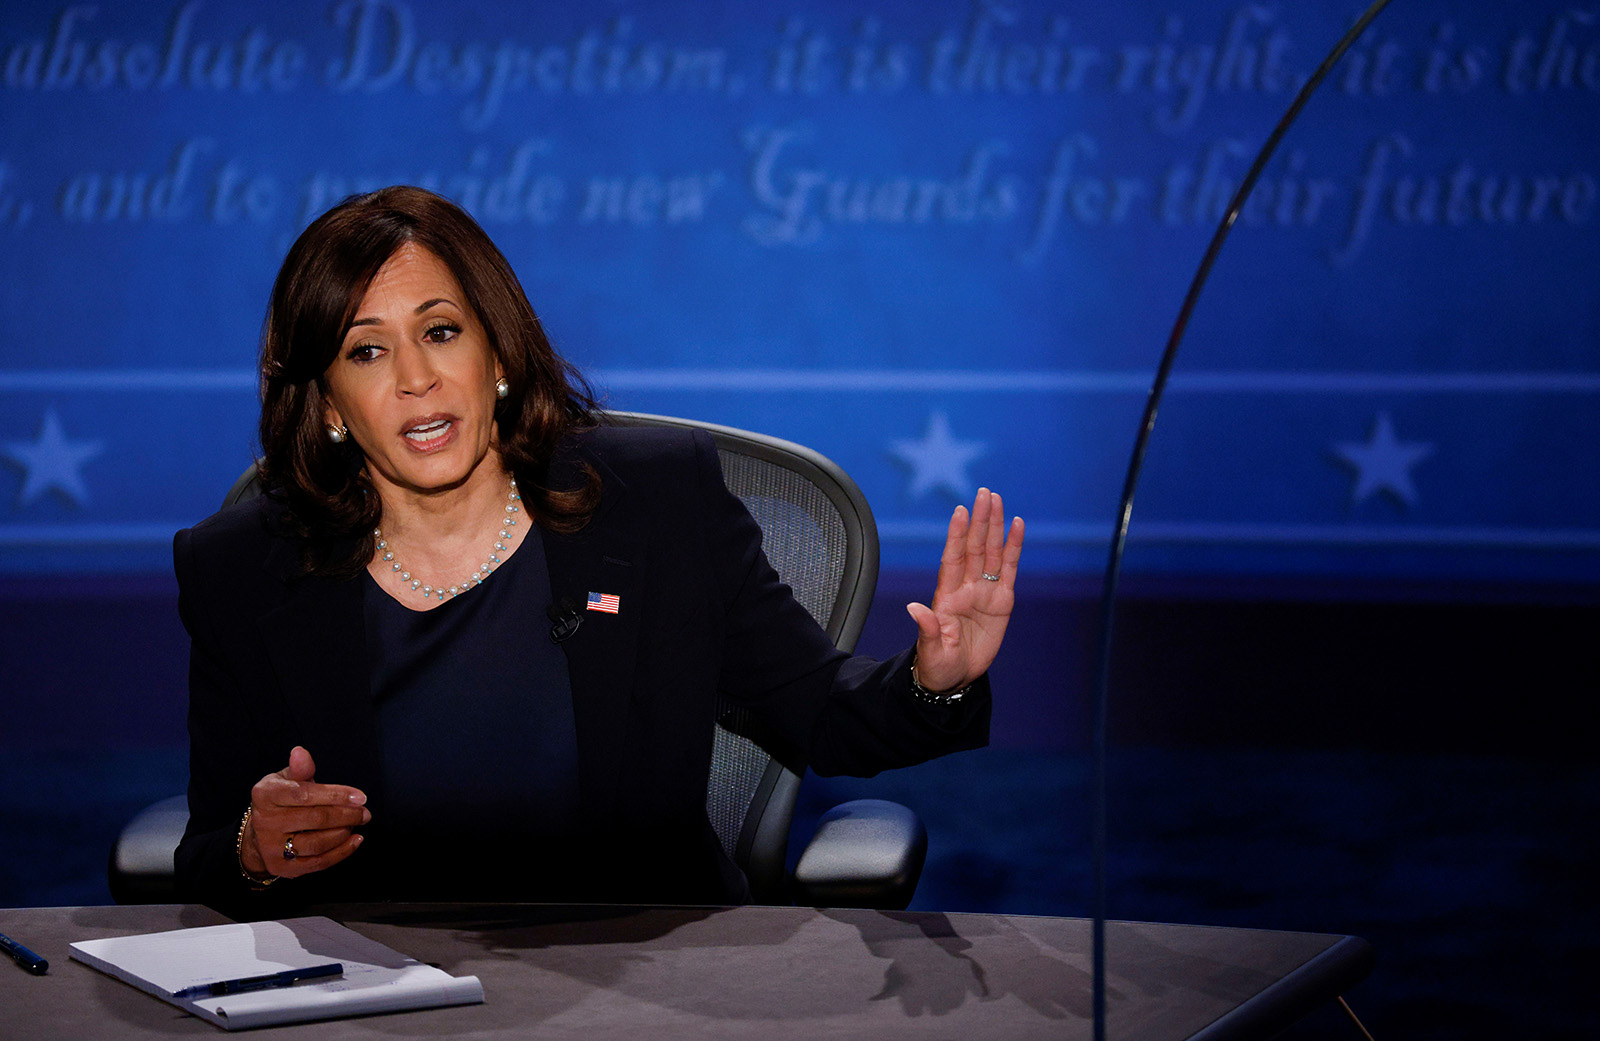 Democratic vice presidential nominee Senator Kamala Harris speaks during the vice presidential campaign debate withU.S. Vice President Mike Pence in Salt Lake City on Wednesday.